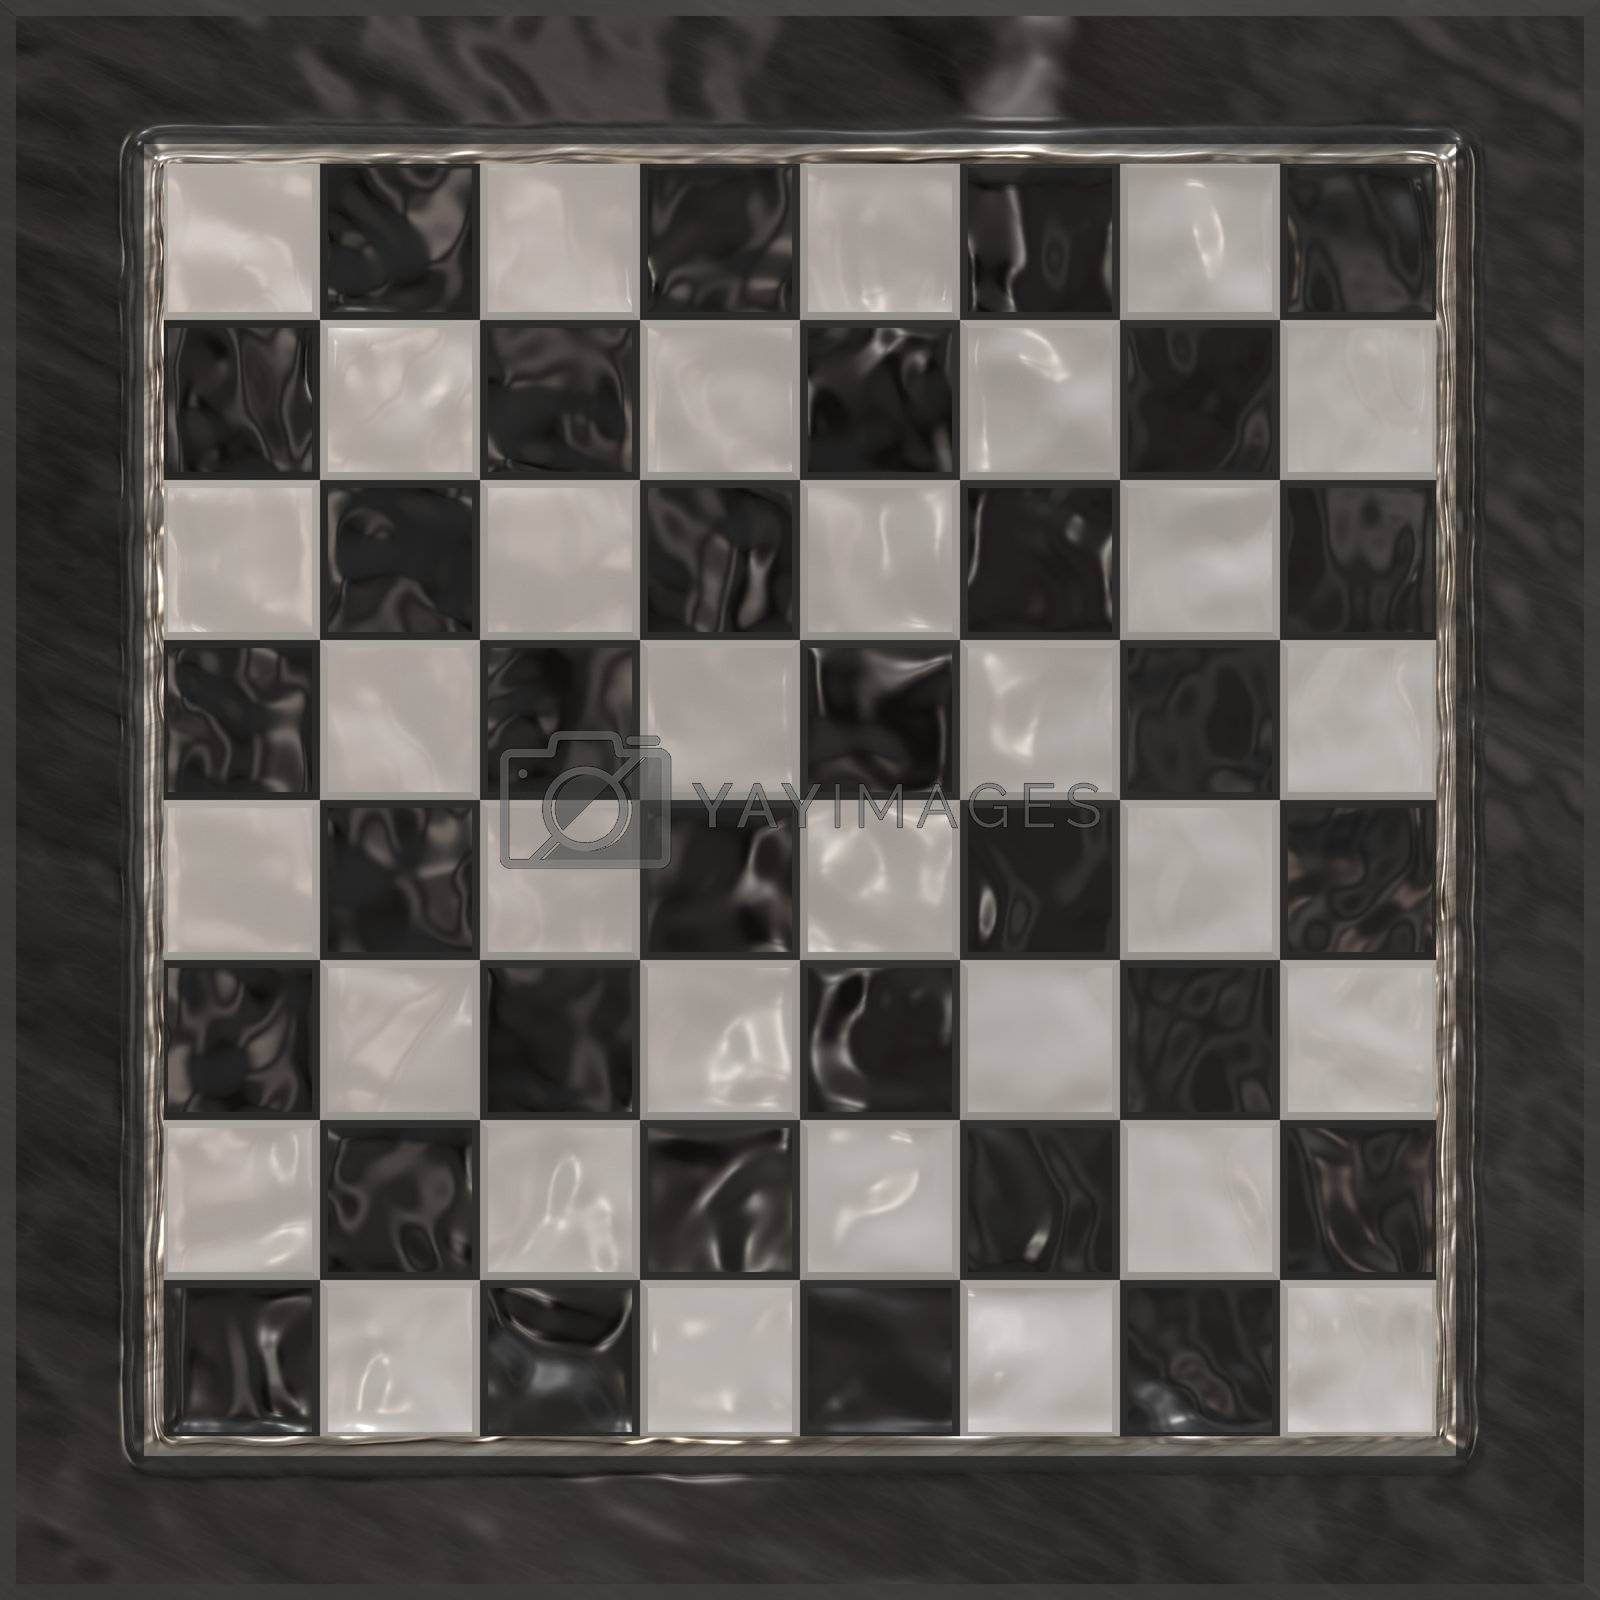 A classy chessboard background with shiny relections.